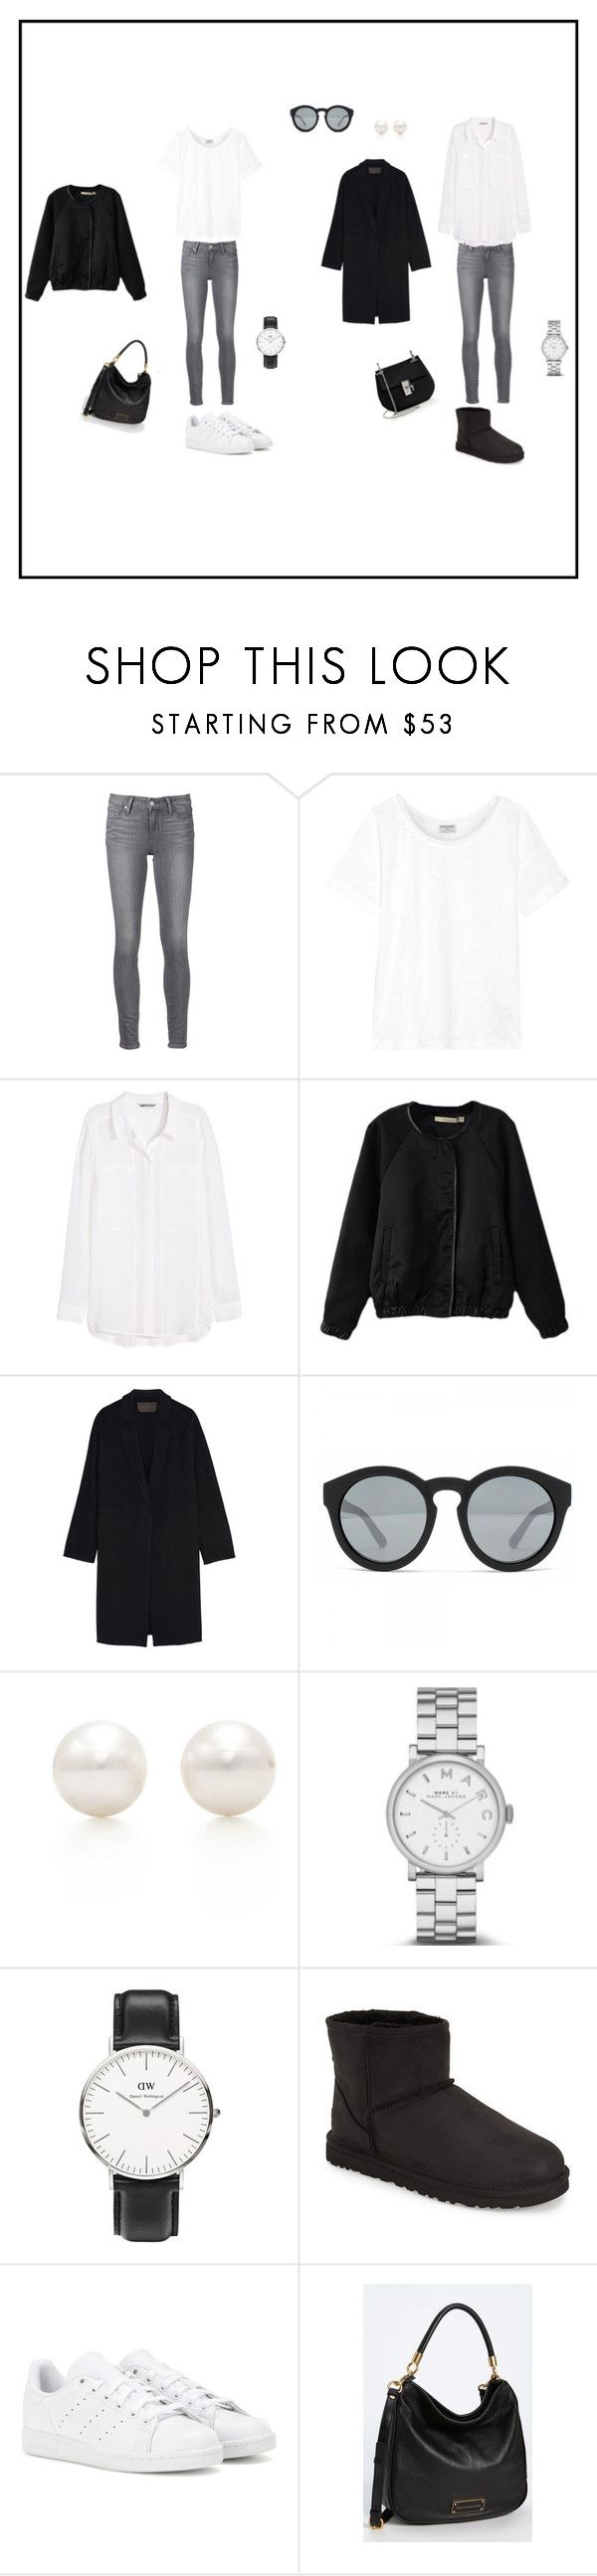 """G R E Y < 3"" by stinalinneea on Polyvore featuring Paige Denim, Frame Denim, H&M, Donna Karan, Marc Jacobs, Tiffany & Co., Marc by Marc Jacobs, Daniel Wellington, UGG Australia and adidas"